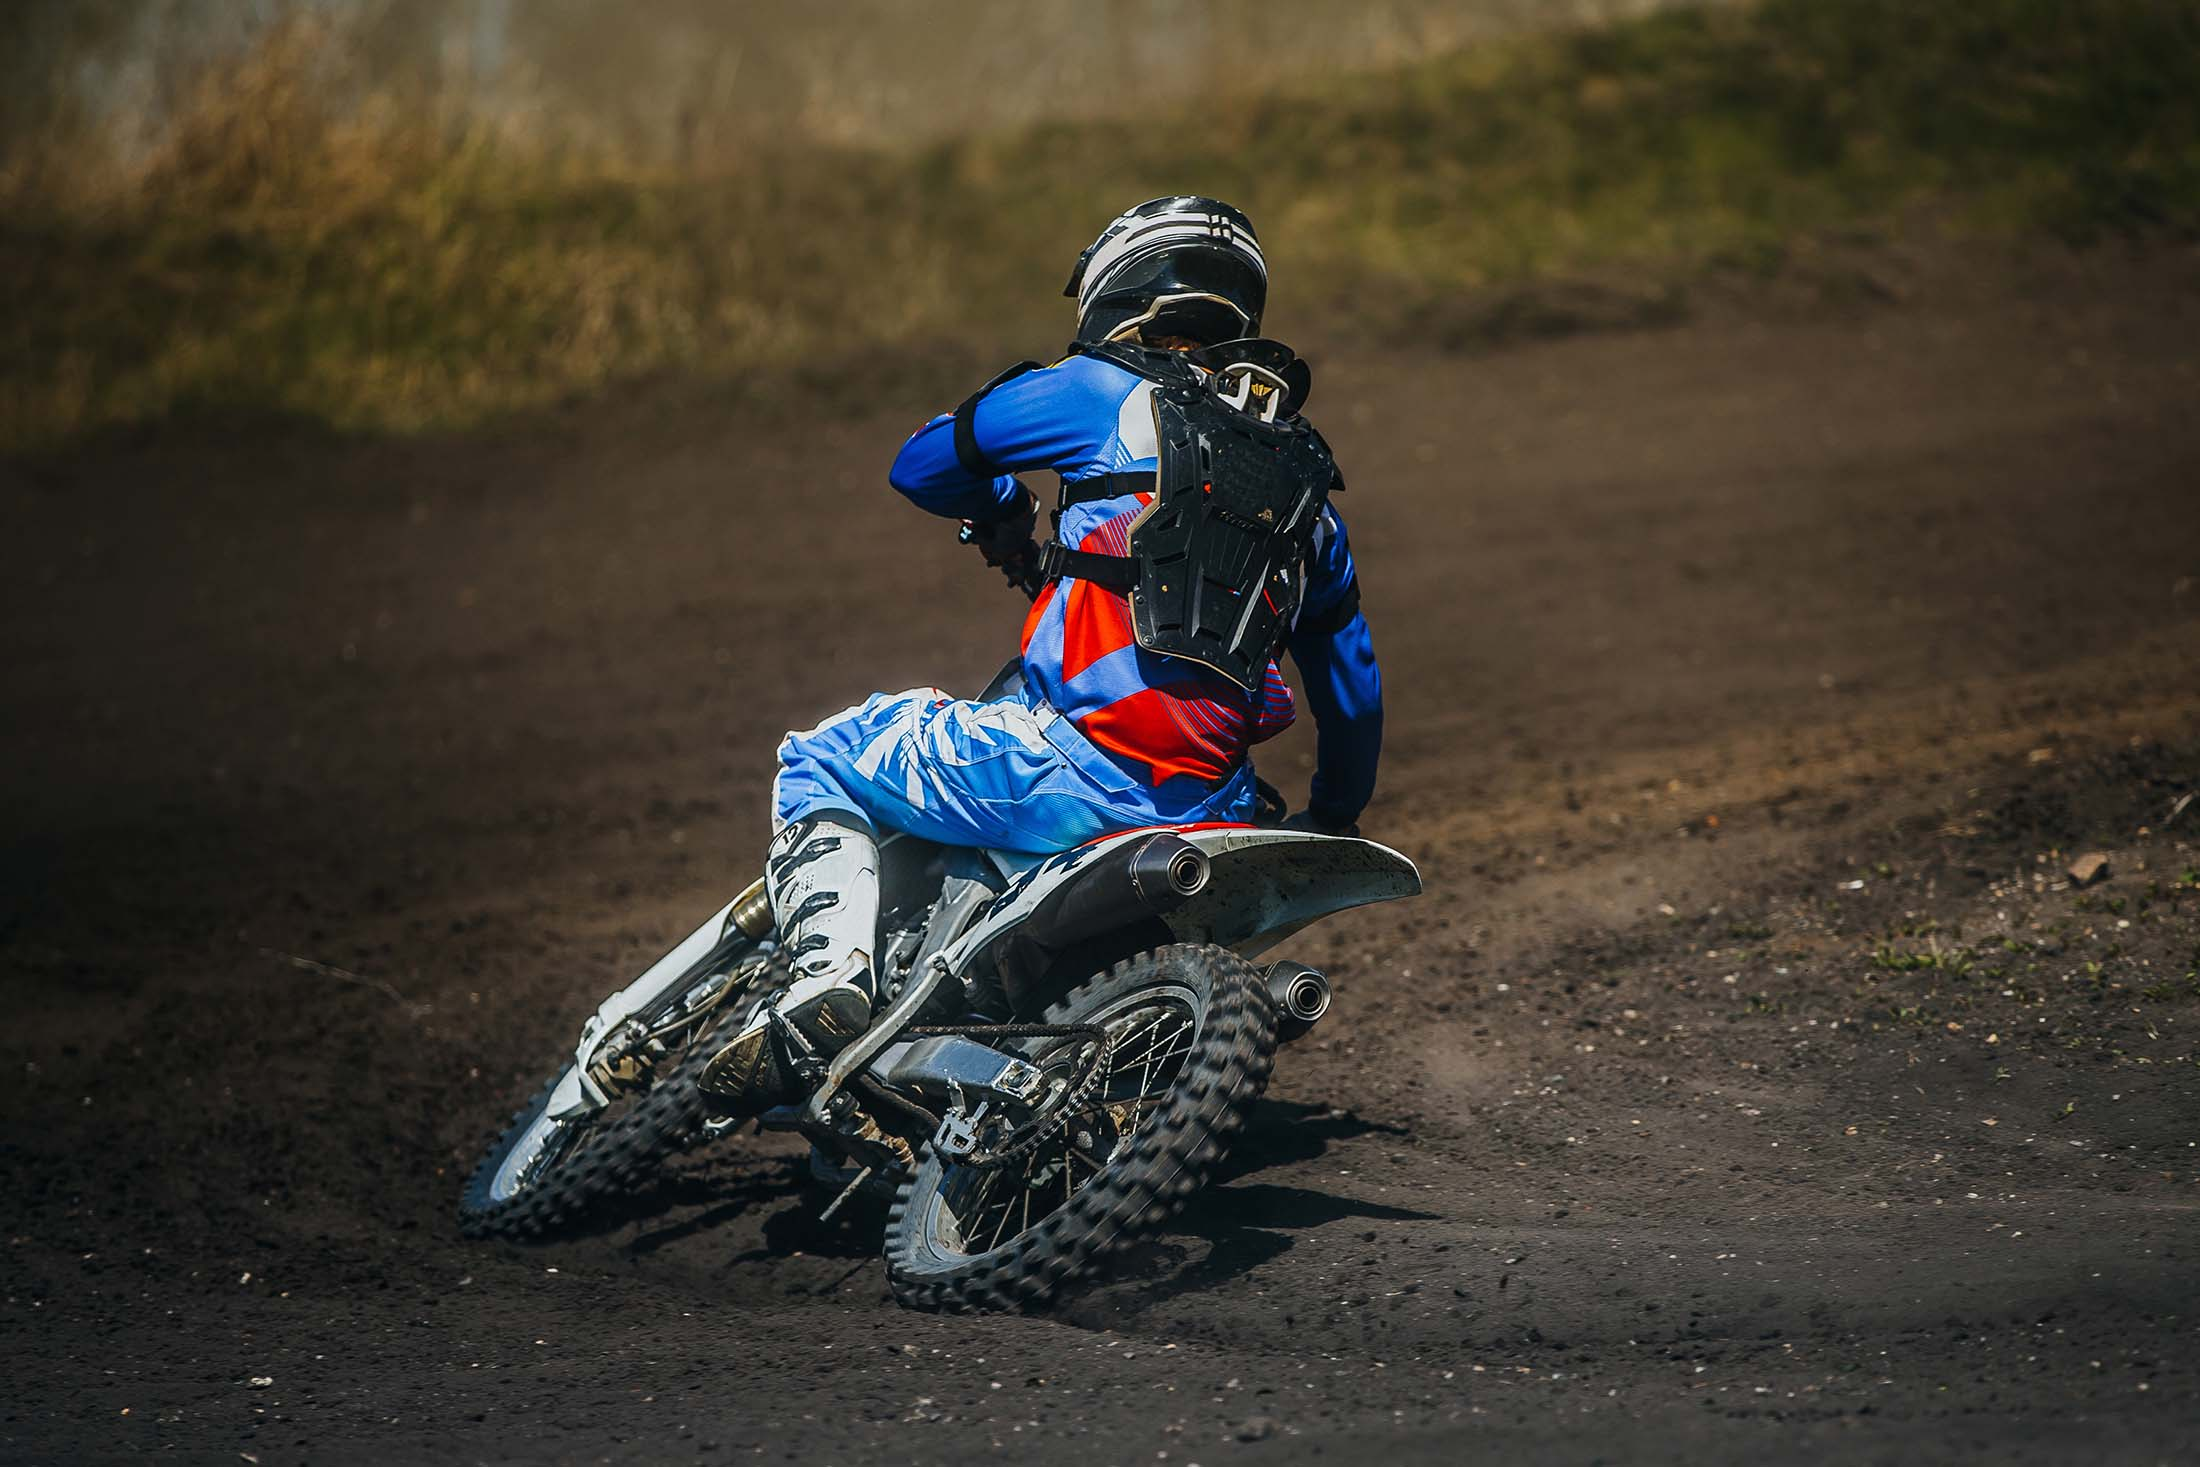 motorcycle racer on a motorcycle rides in turn a dusty track during competition racing